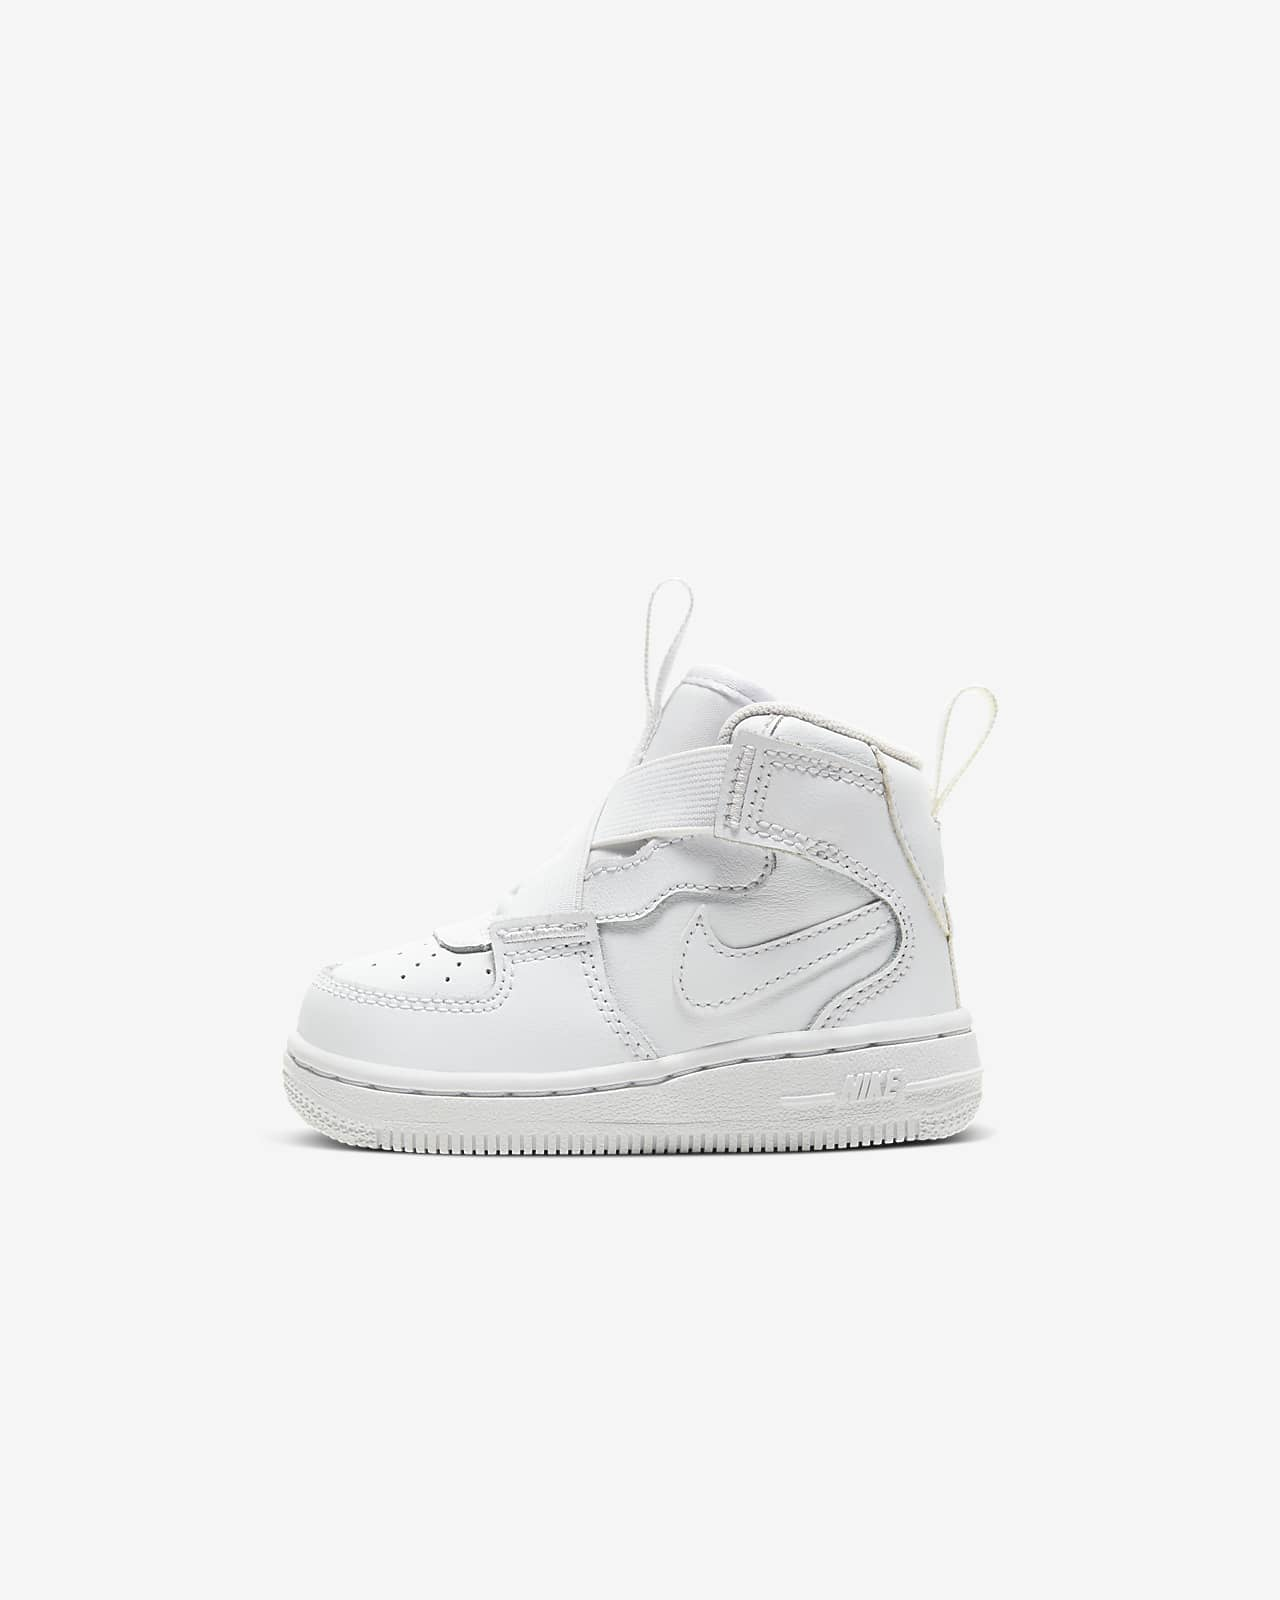 Nike Force 1 Highness Baby and Toddler Shoe